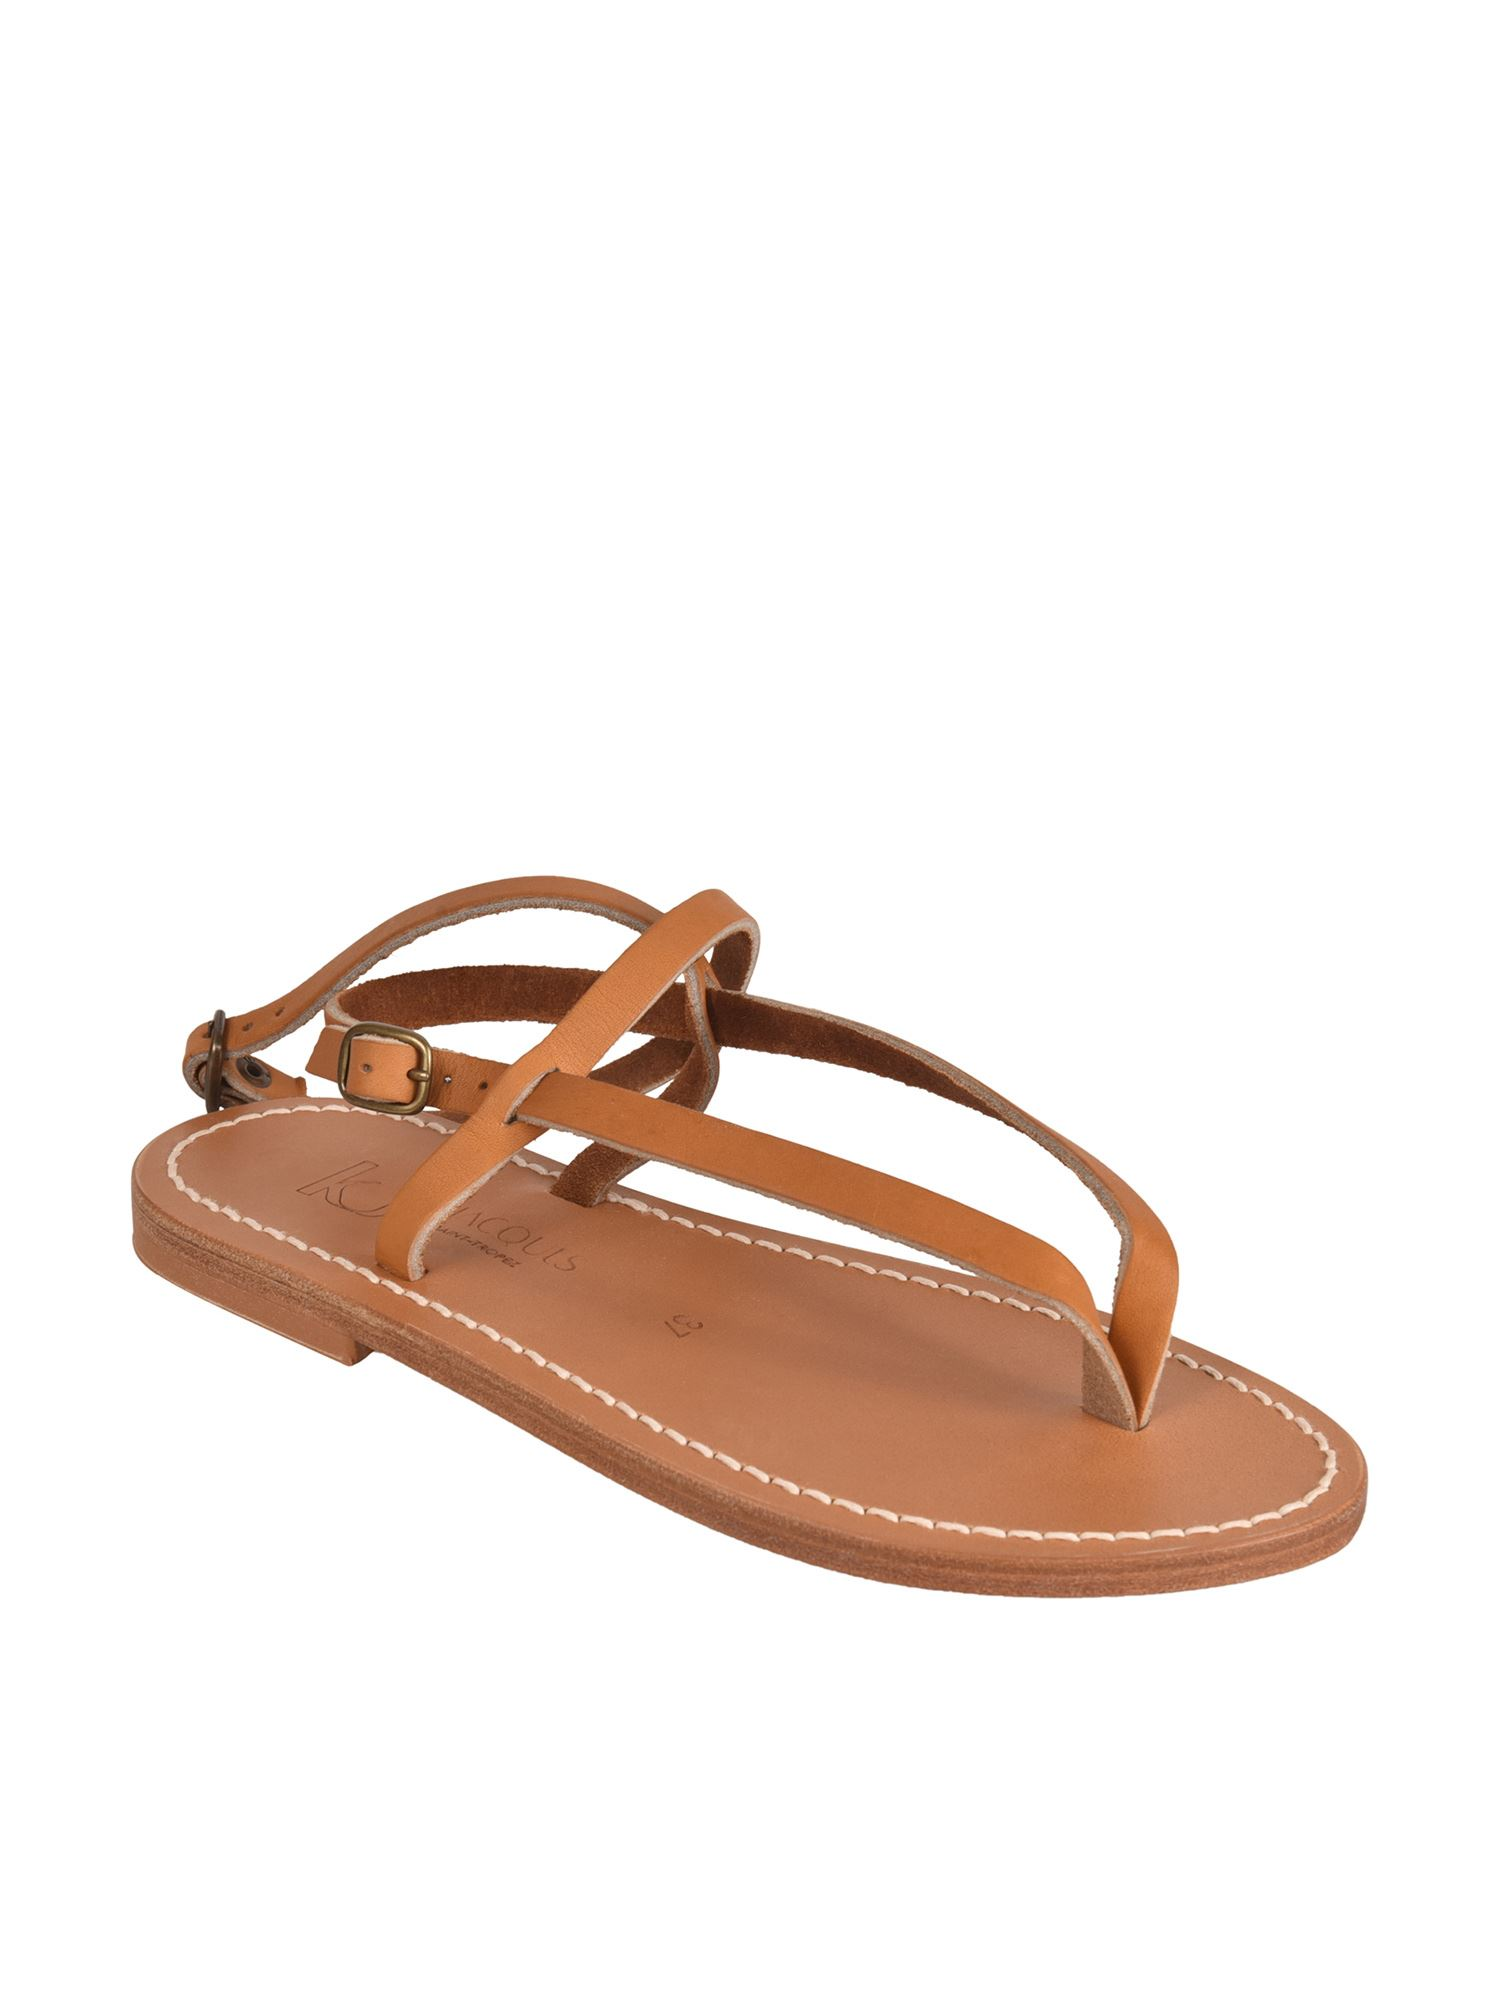 K.jacques ABAKO SANDALS IN NATUREL COLOR